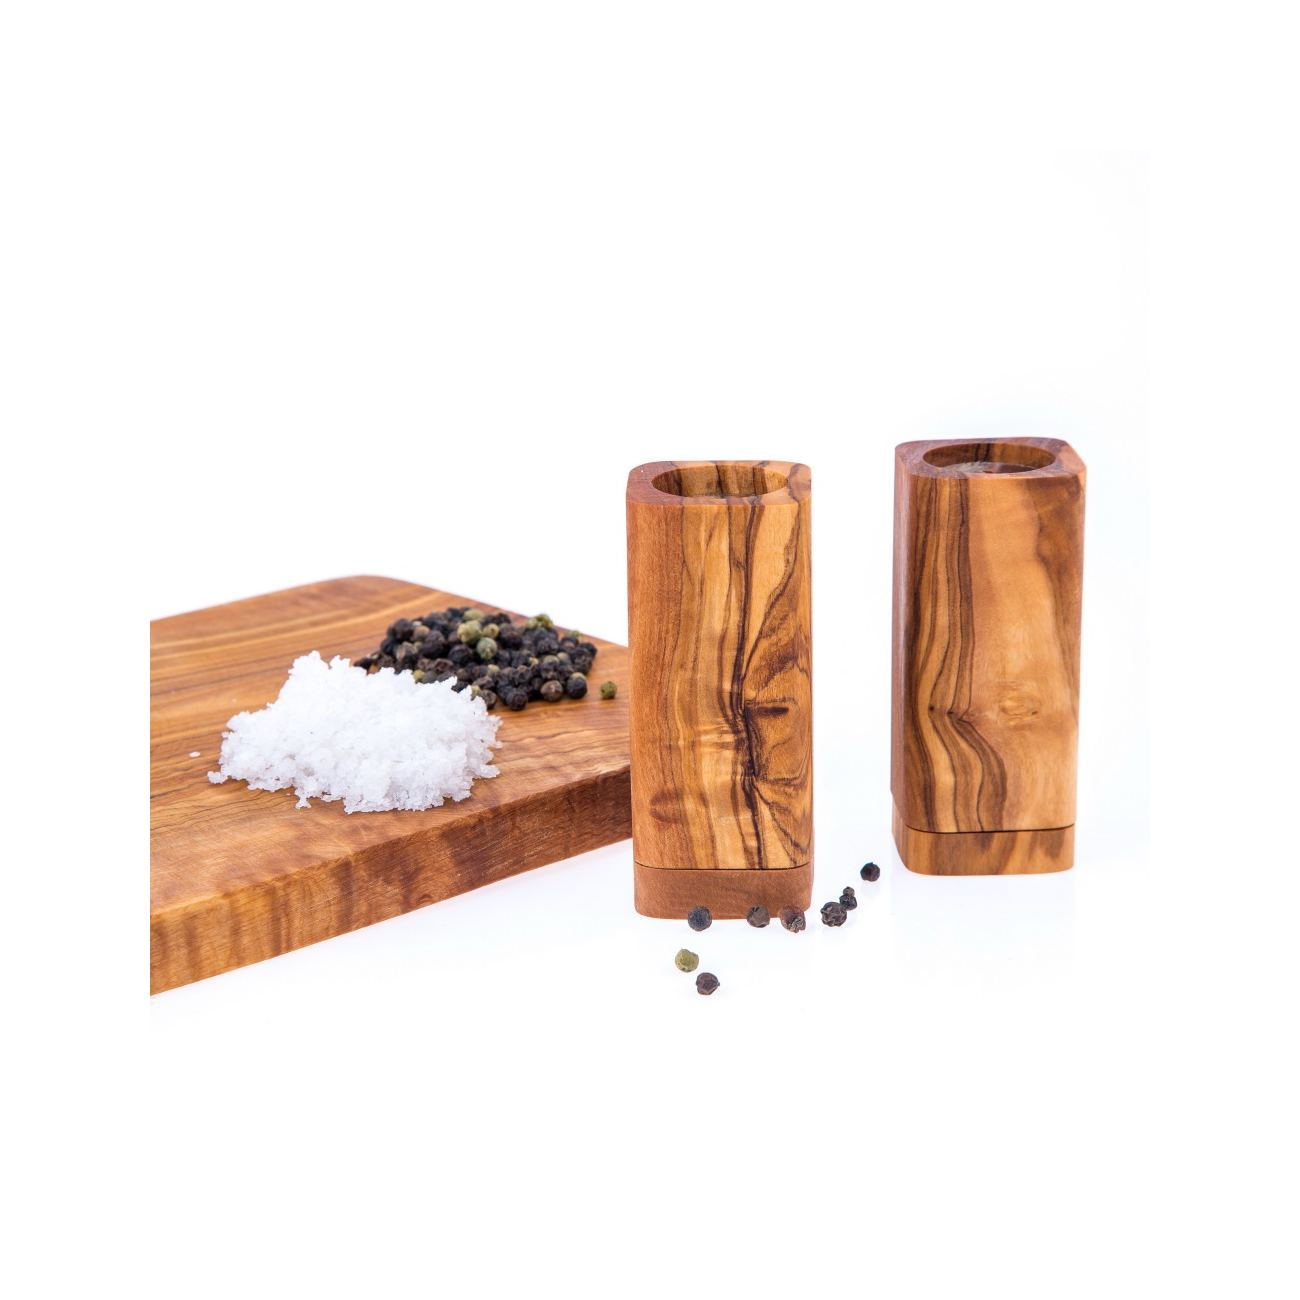 Olive Wood Kitchen Accessories Handmade Wooden Salt Pepper Shakers Set 6